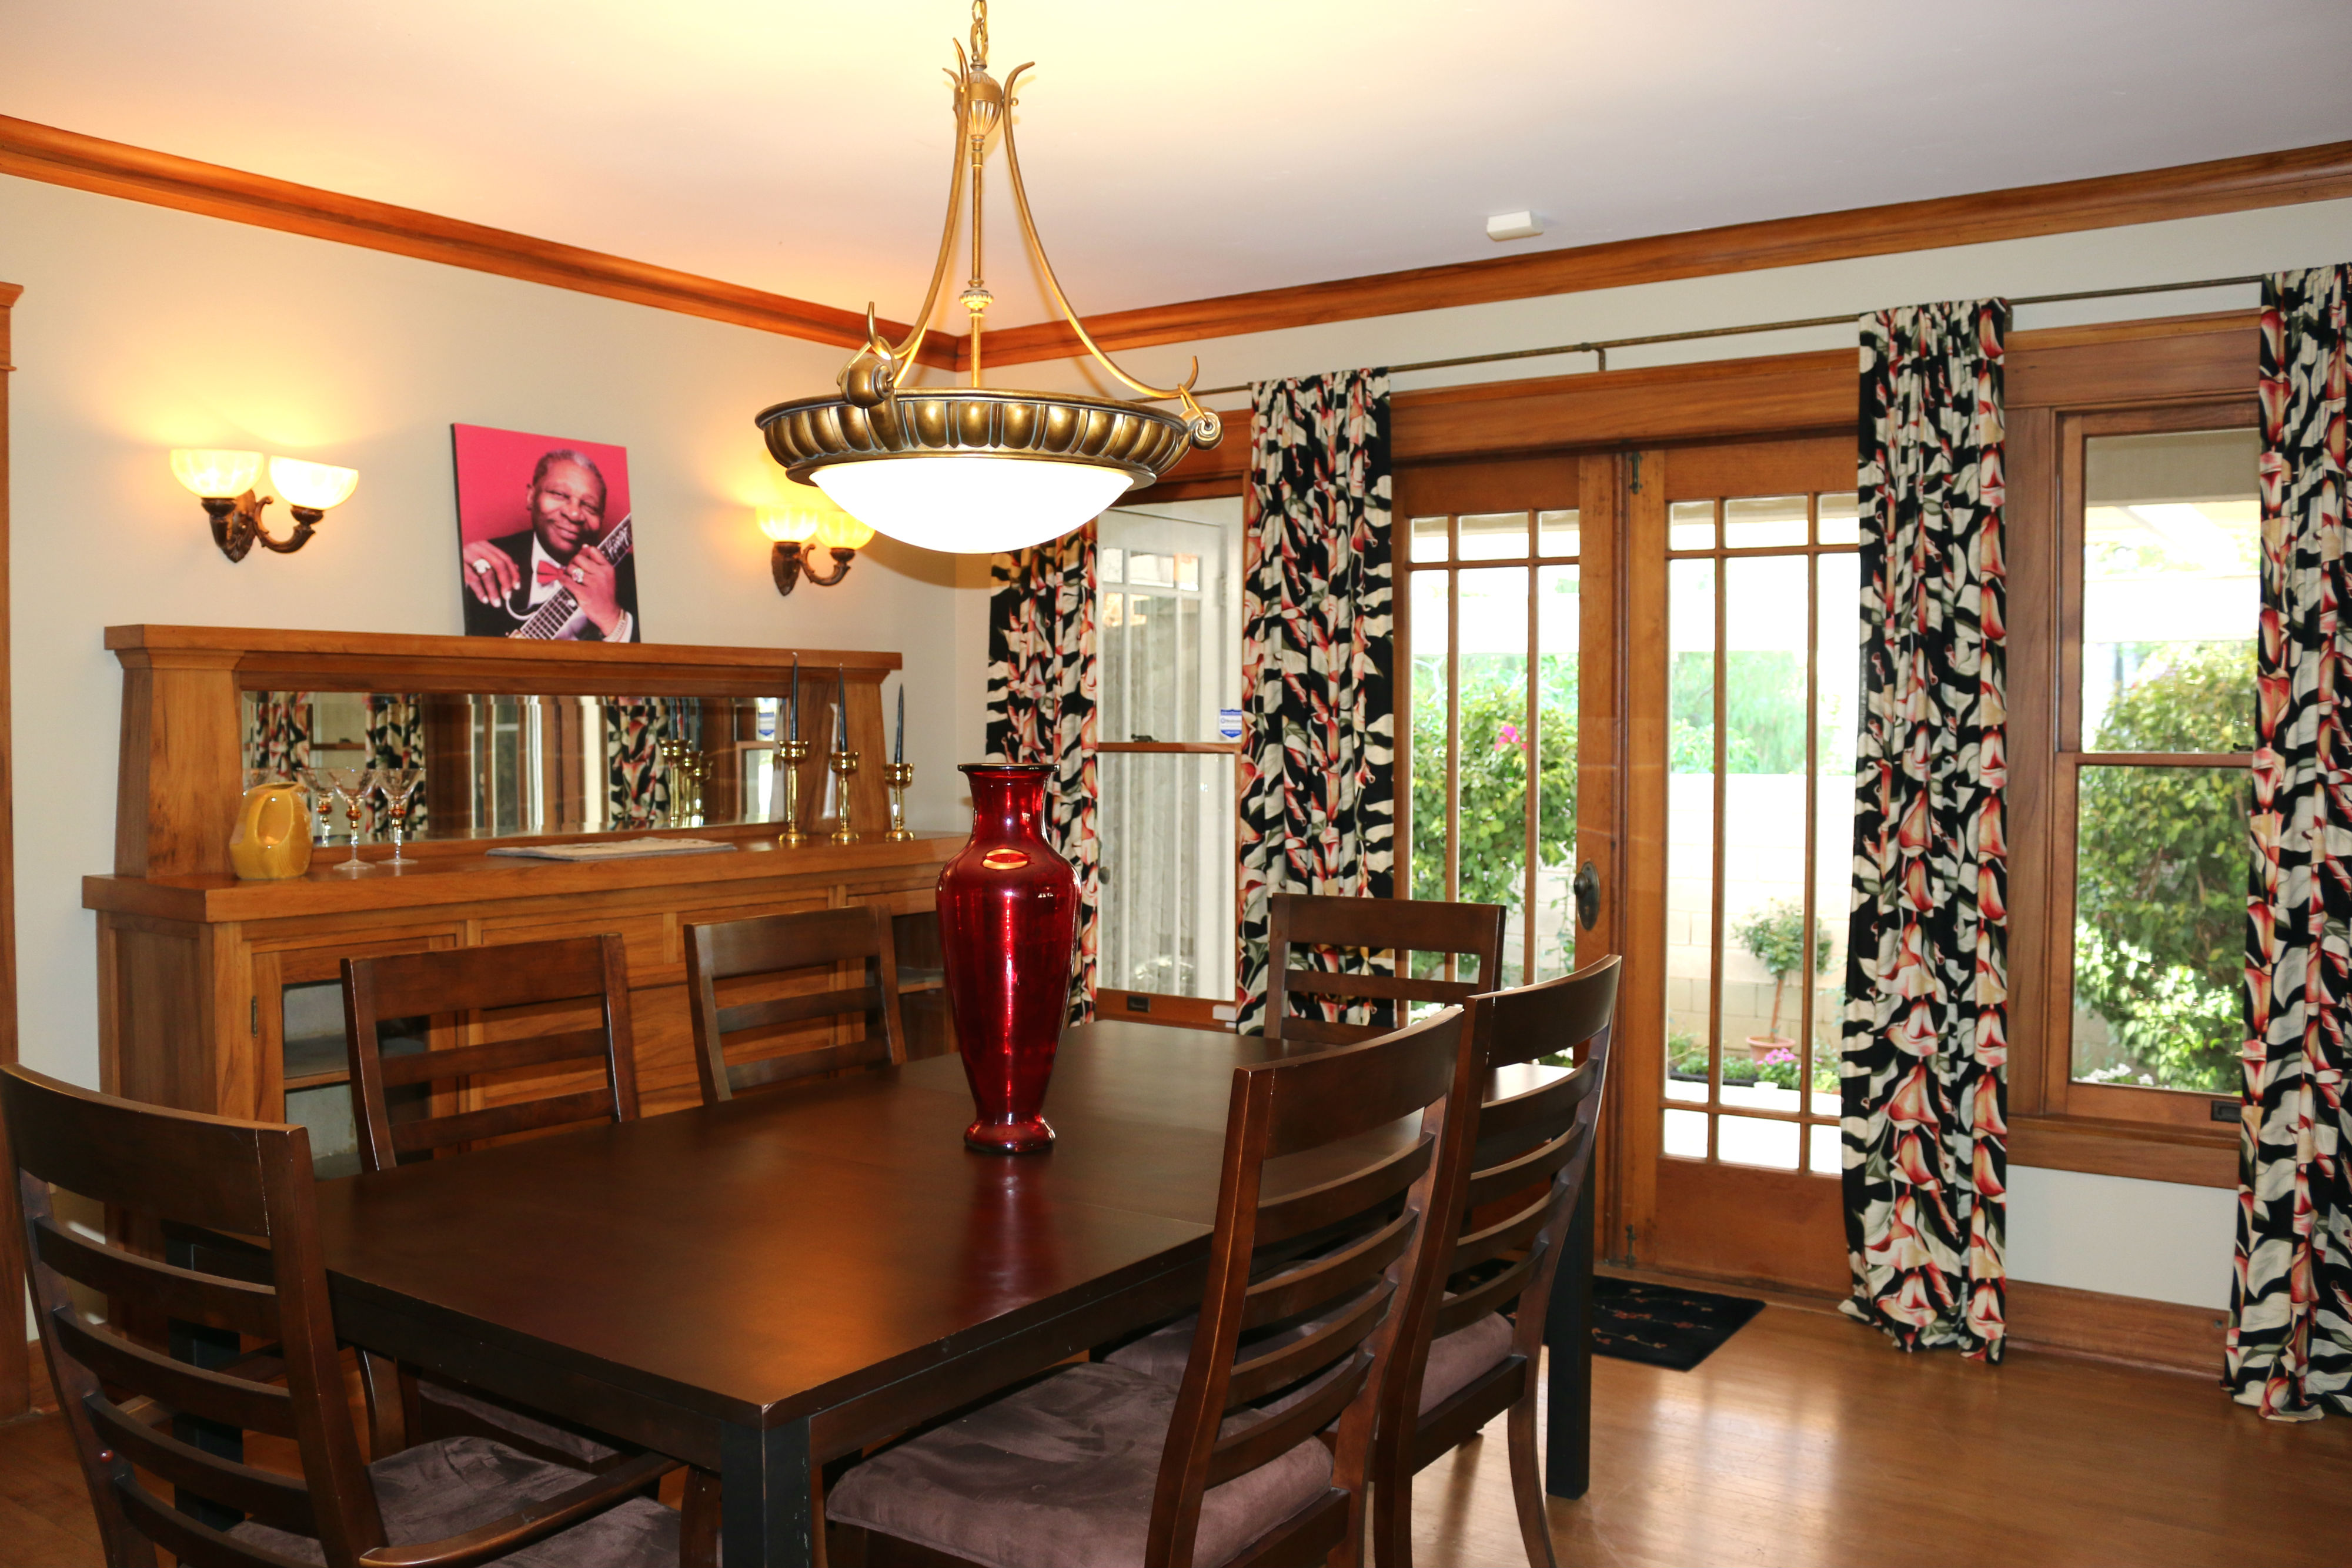 Fabulous Large Formal Dining Room With French Doors Leading To Private Side Patio